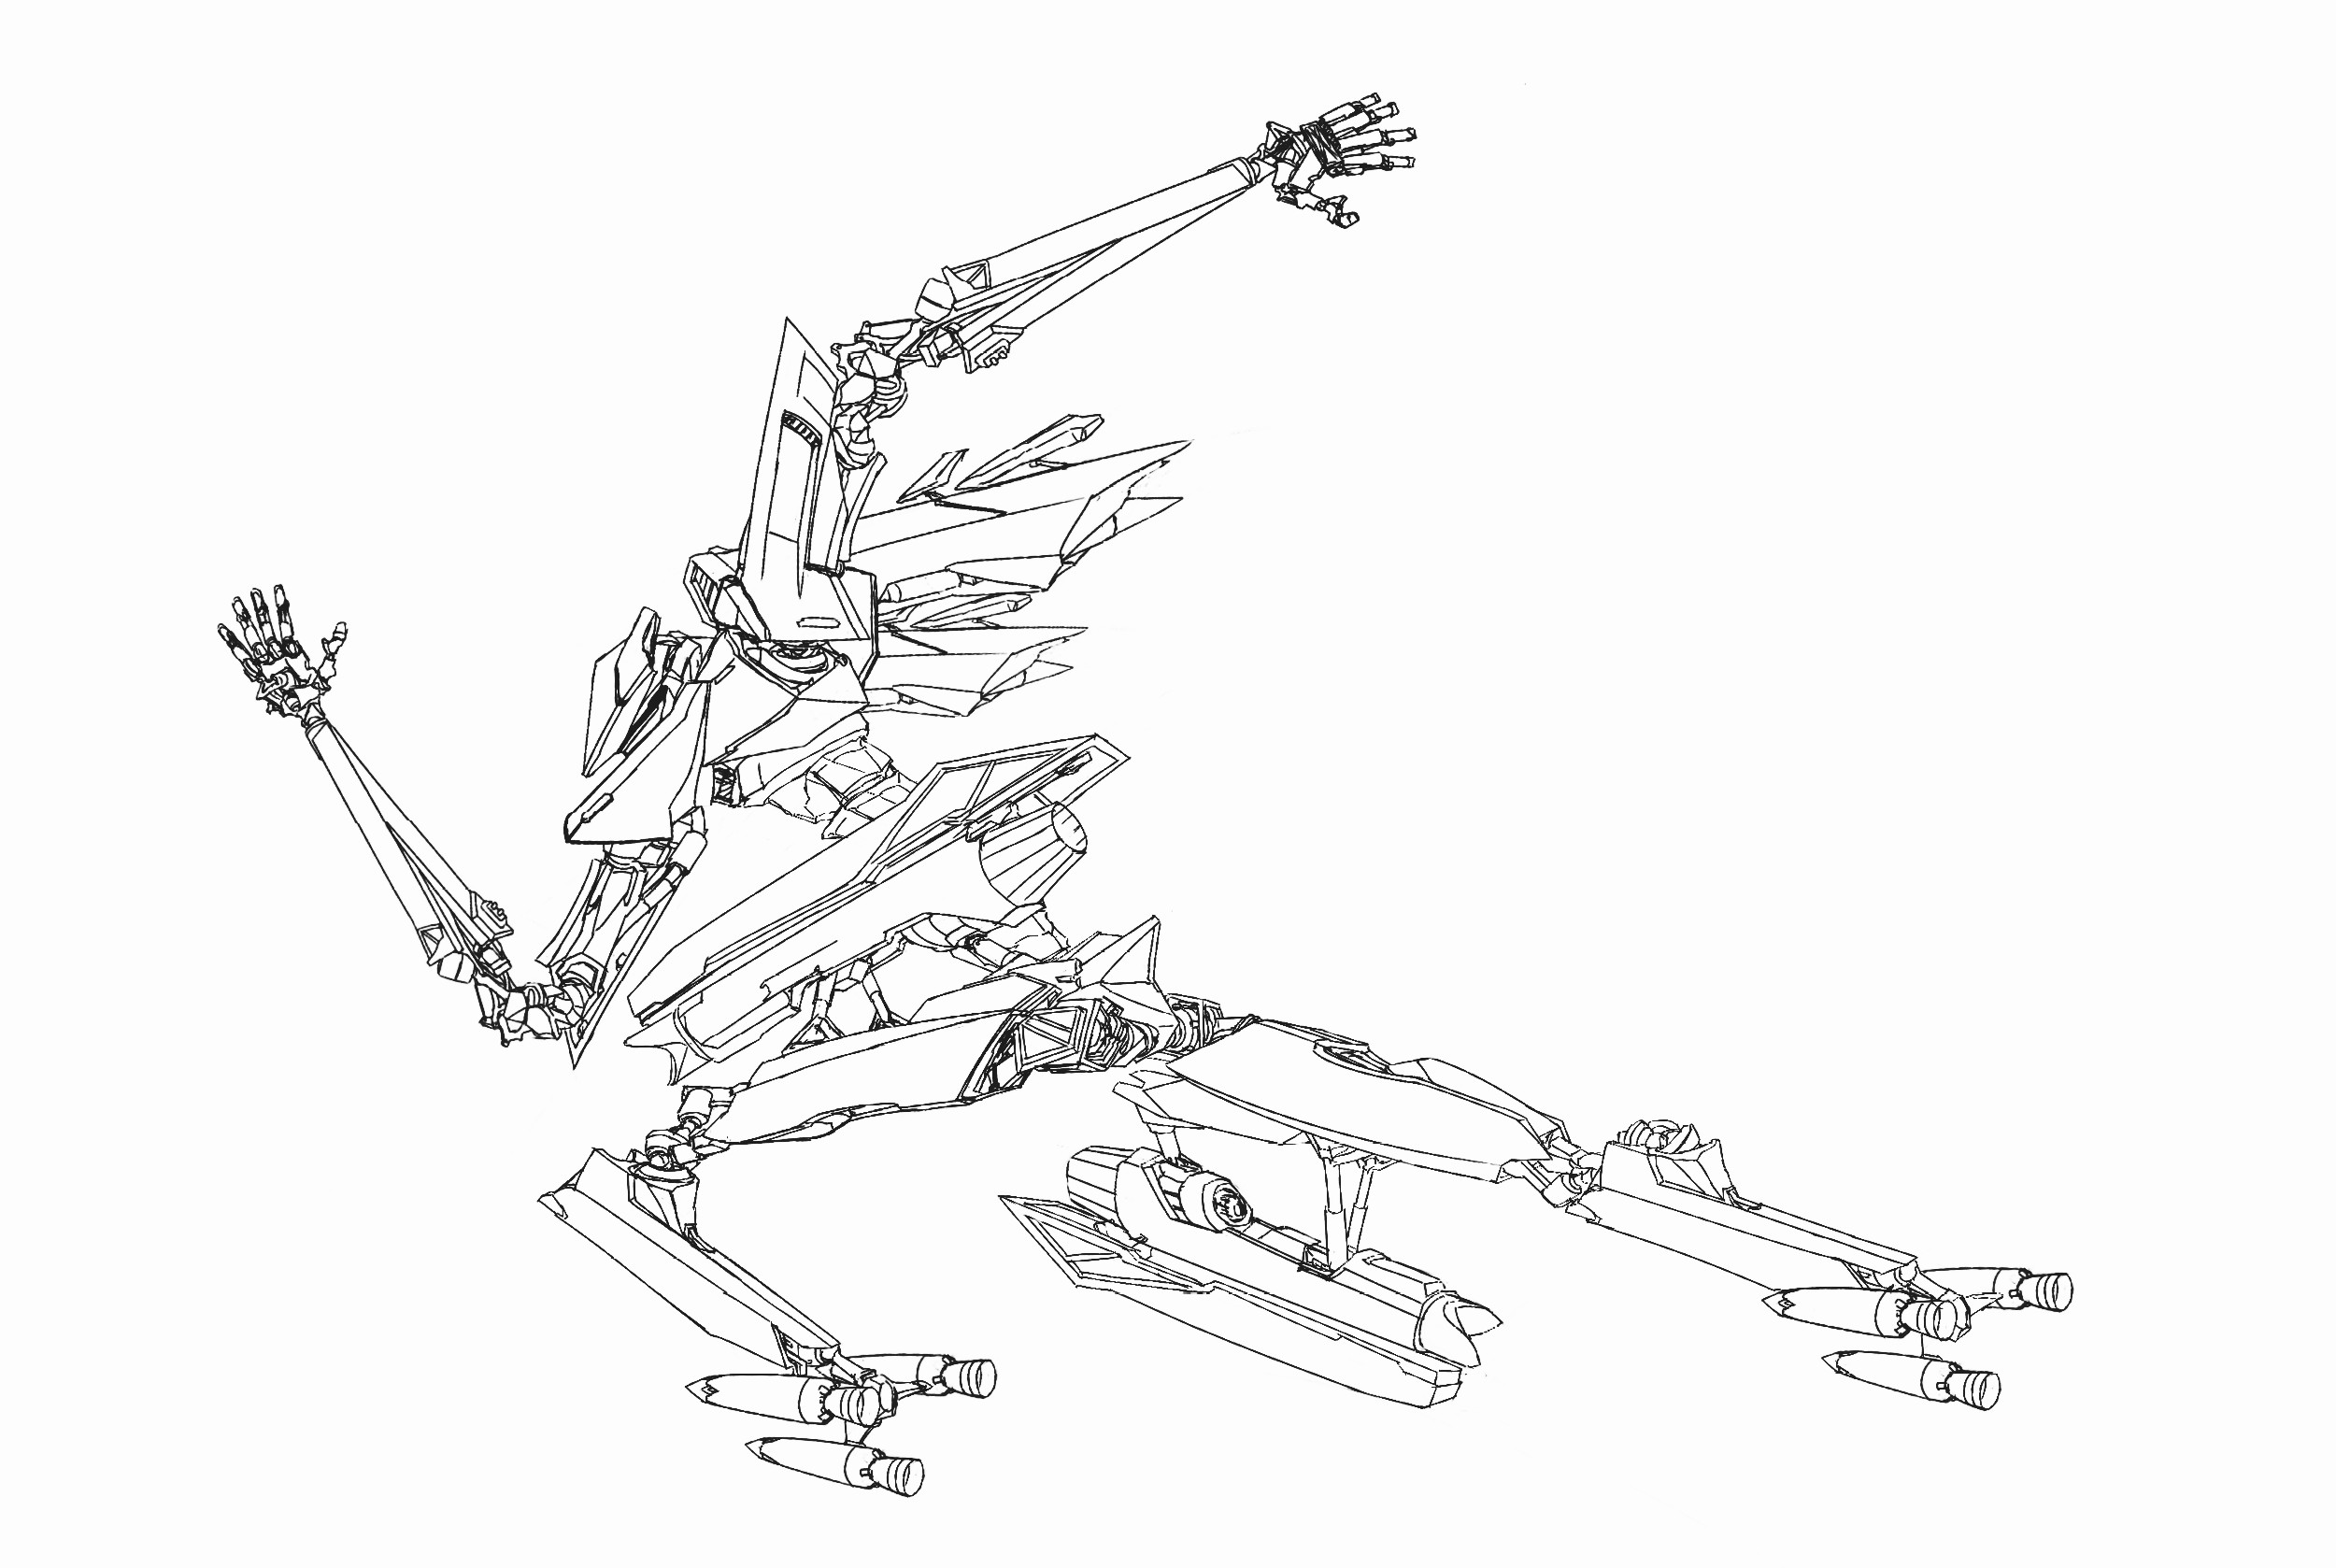 Scanned it in and more seriously rendered the mechanical bits.